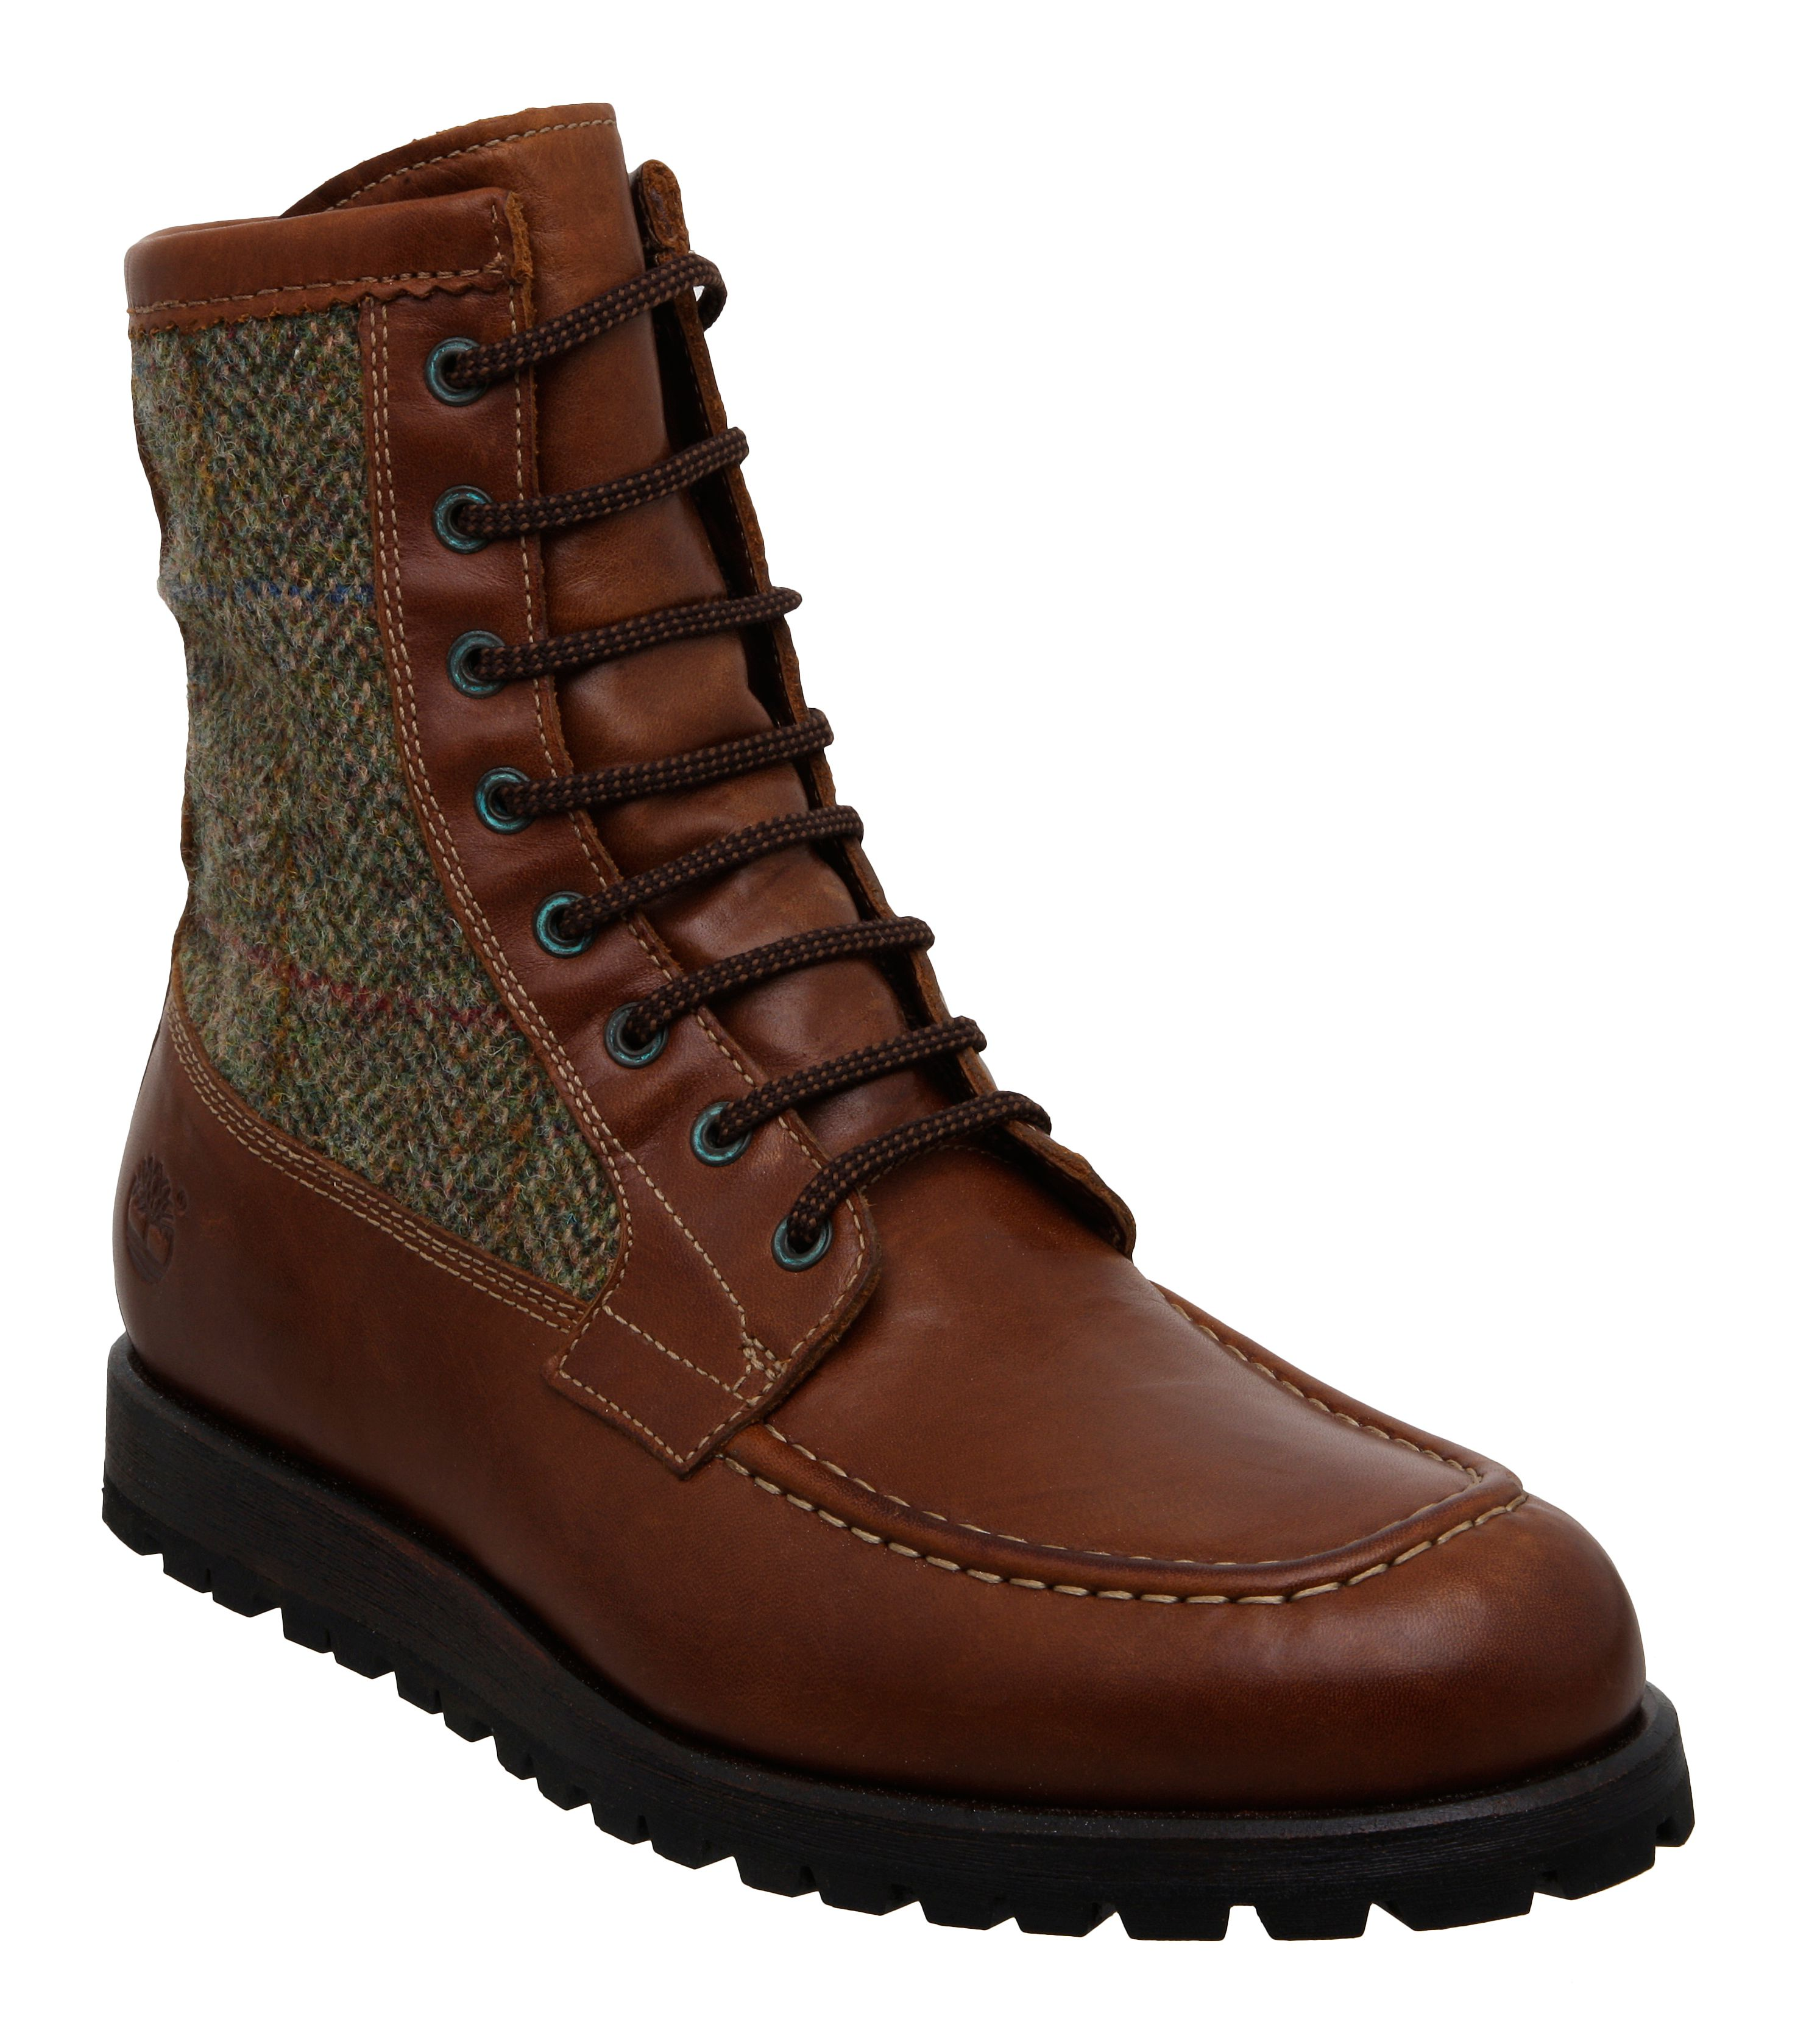 buy cheap timberland boots compare s footwear prices